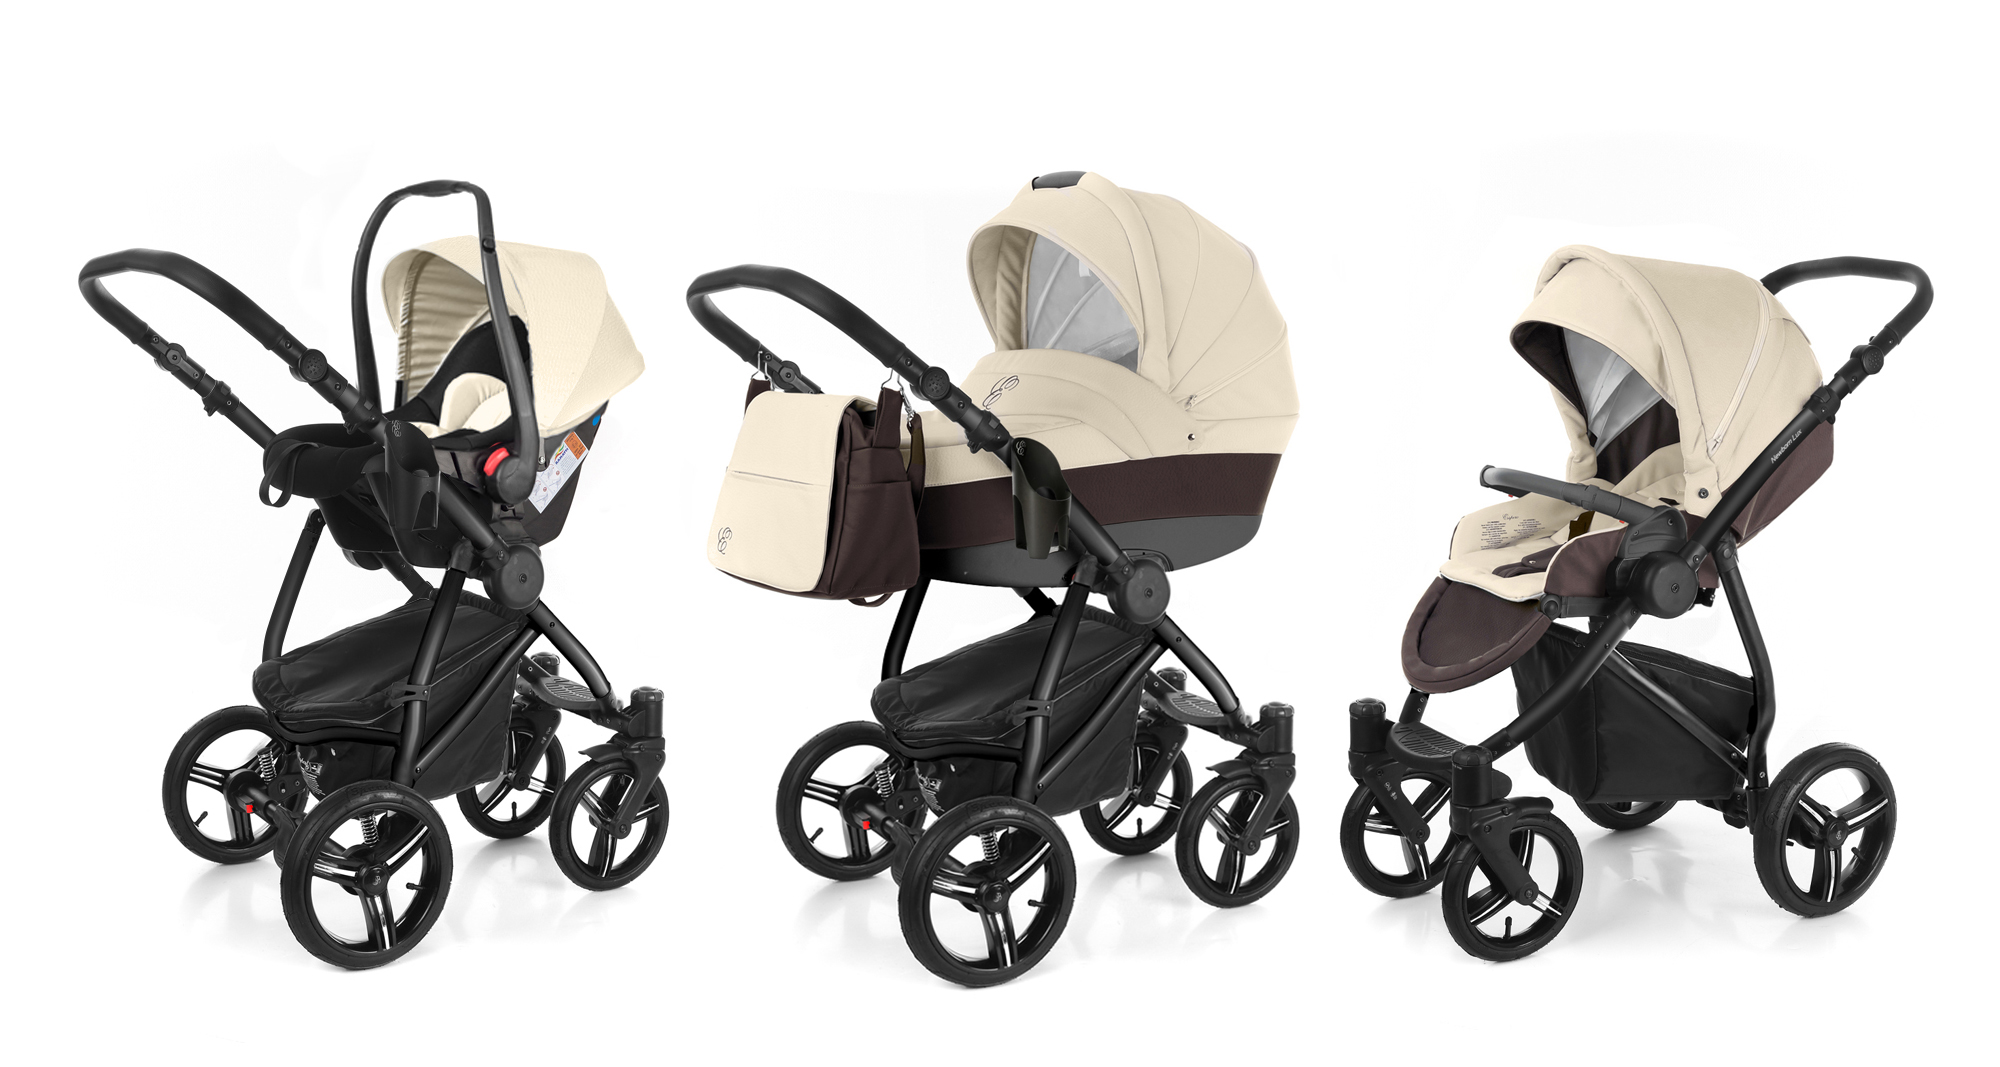 Коляска 3 в 1 Esspero Grand Newborn Lux (шасси Black). Фото N9